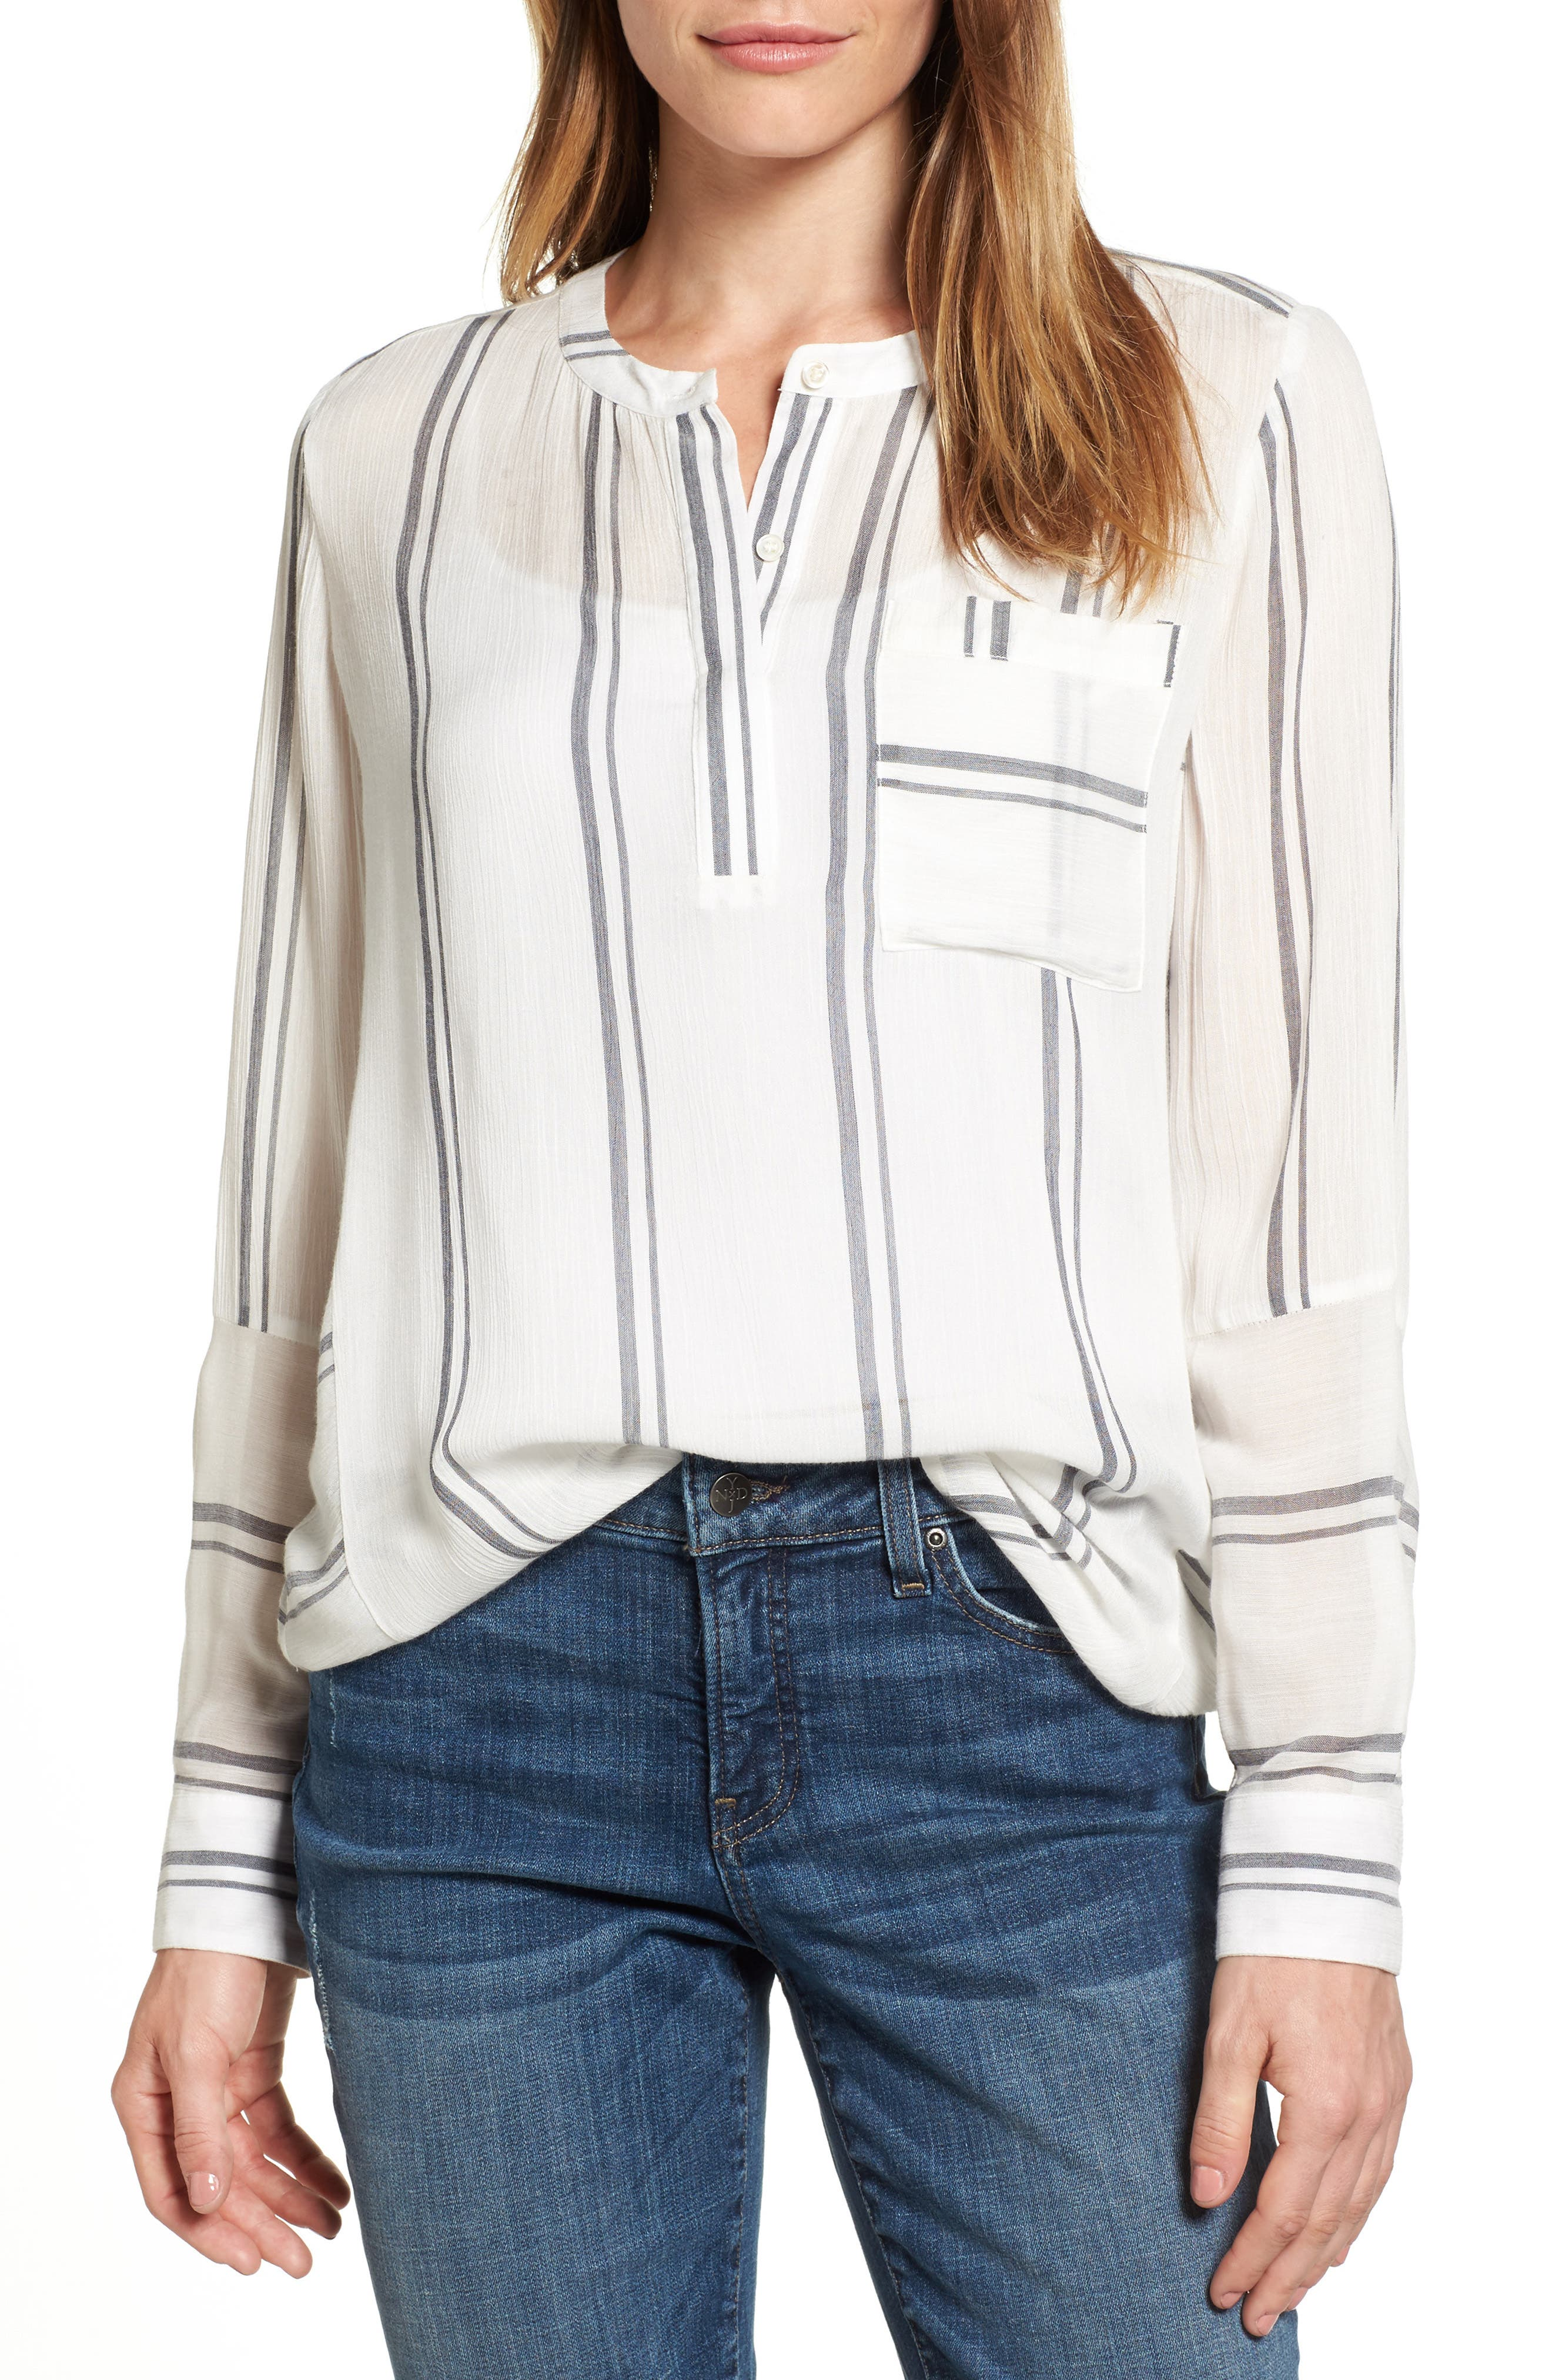 Alternate Image 1 Selected - Two by Vince Camuto Parallel Stripe Henley Shirt